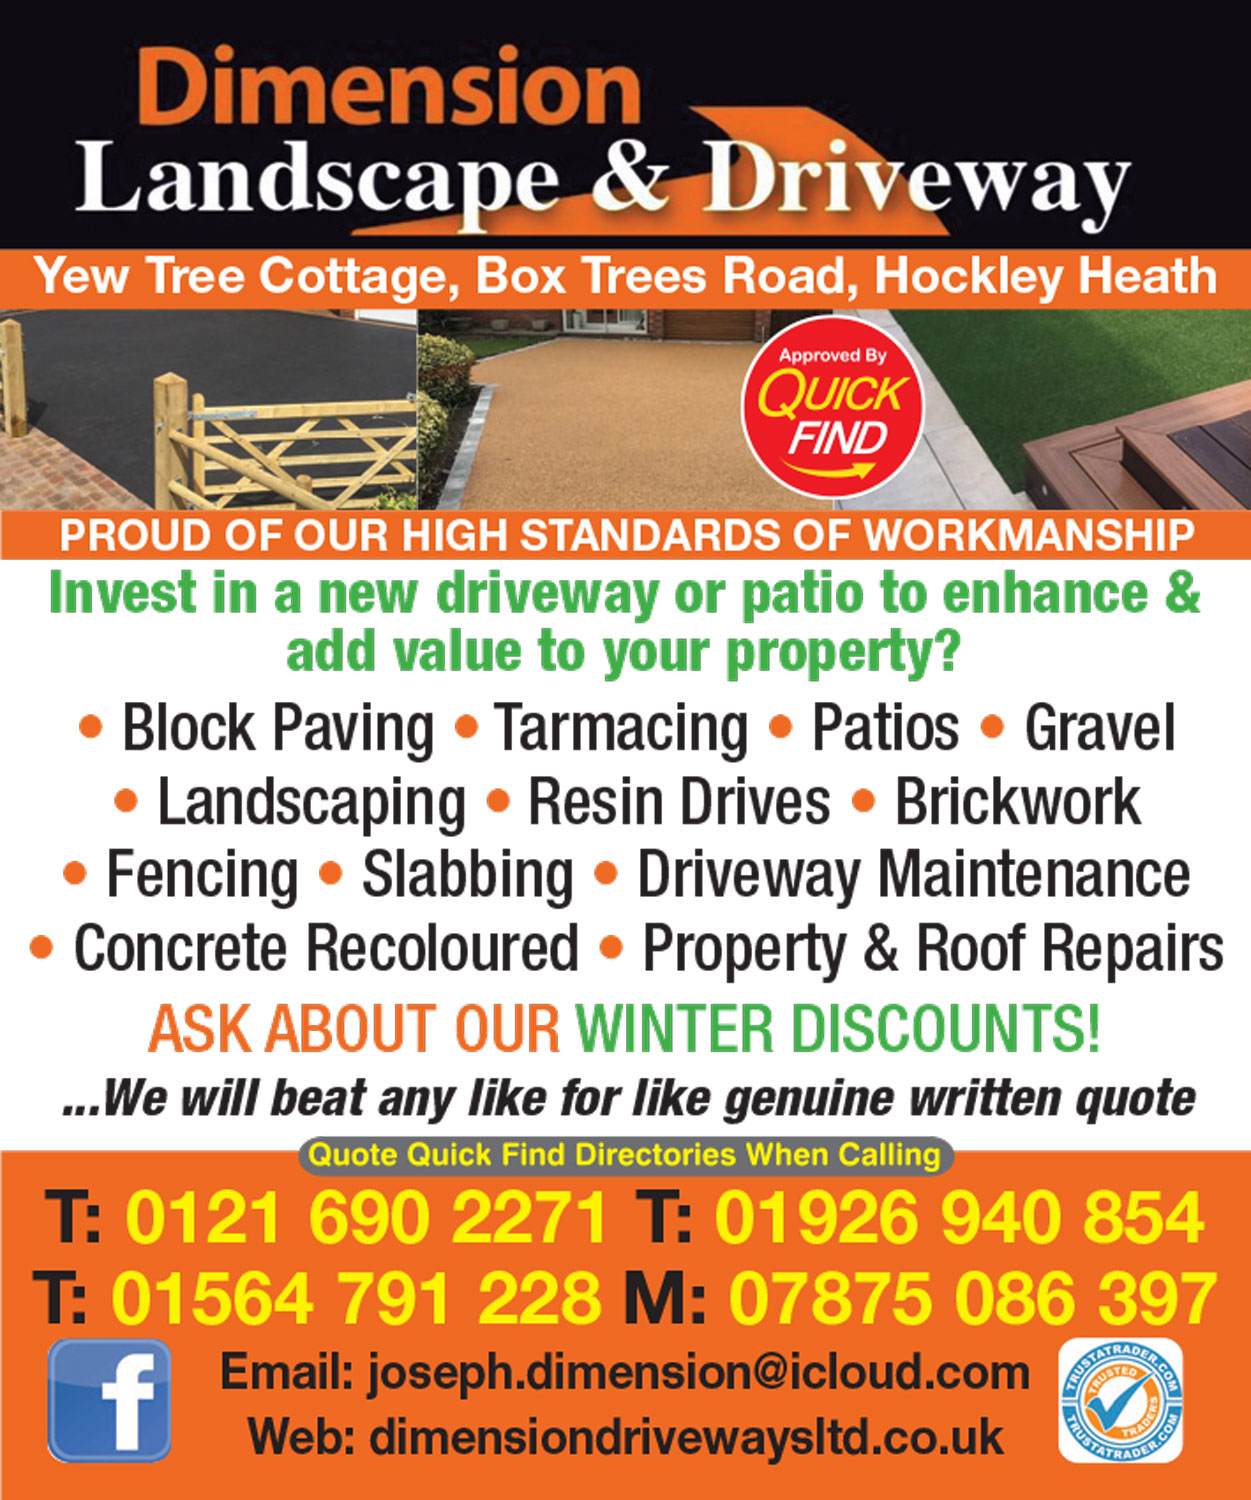 Dimension Landscape & Driveways